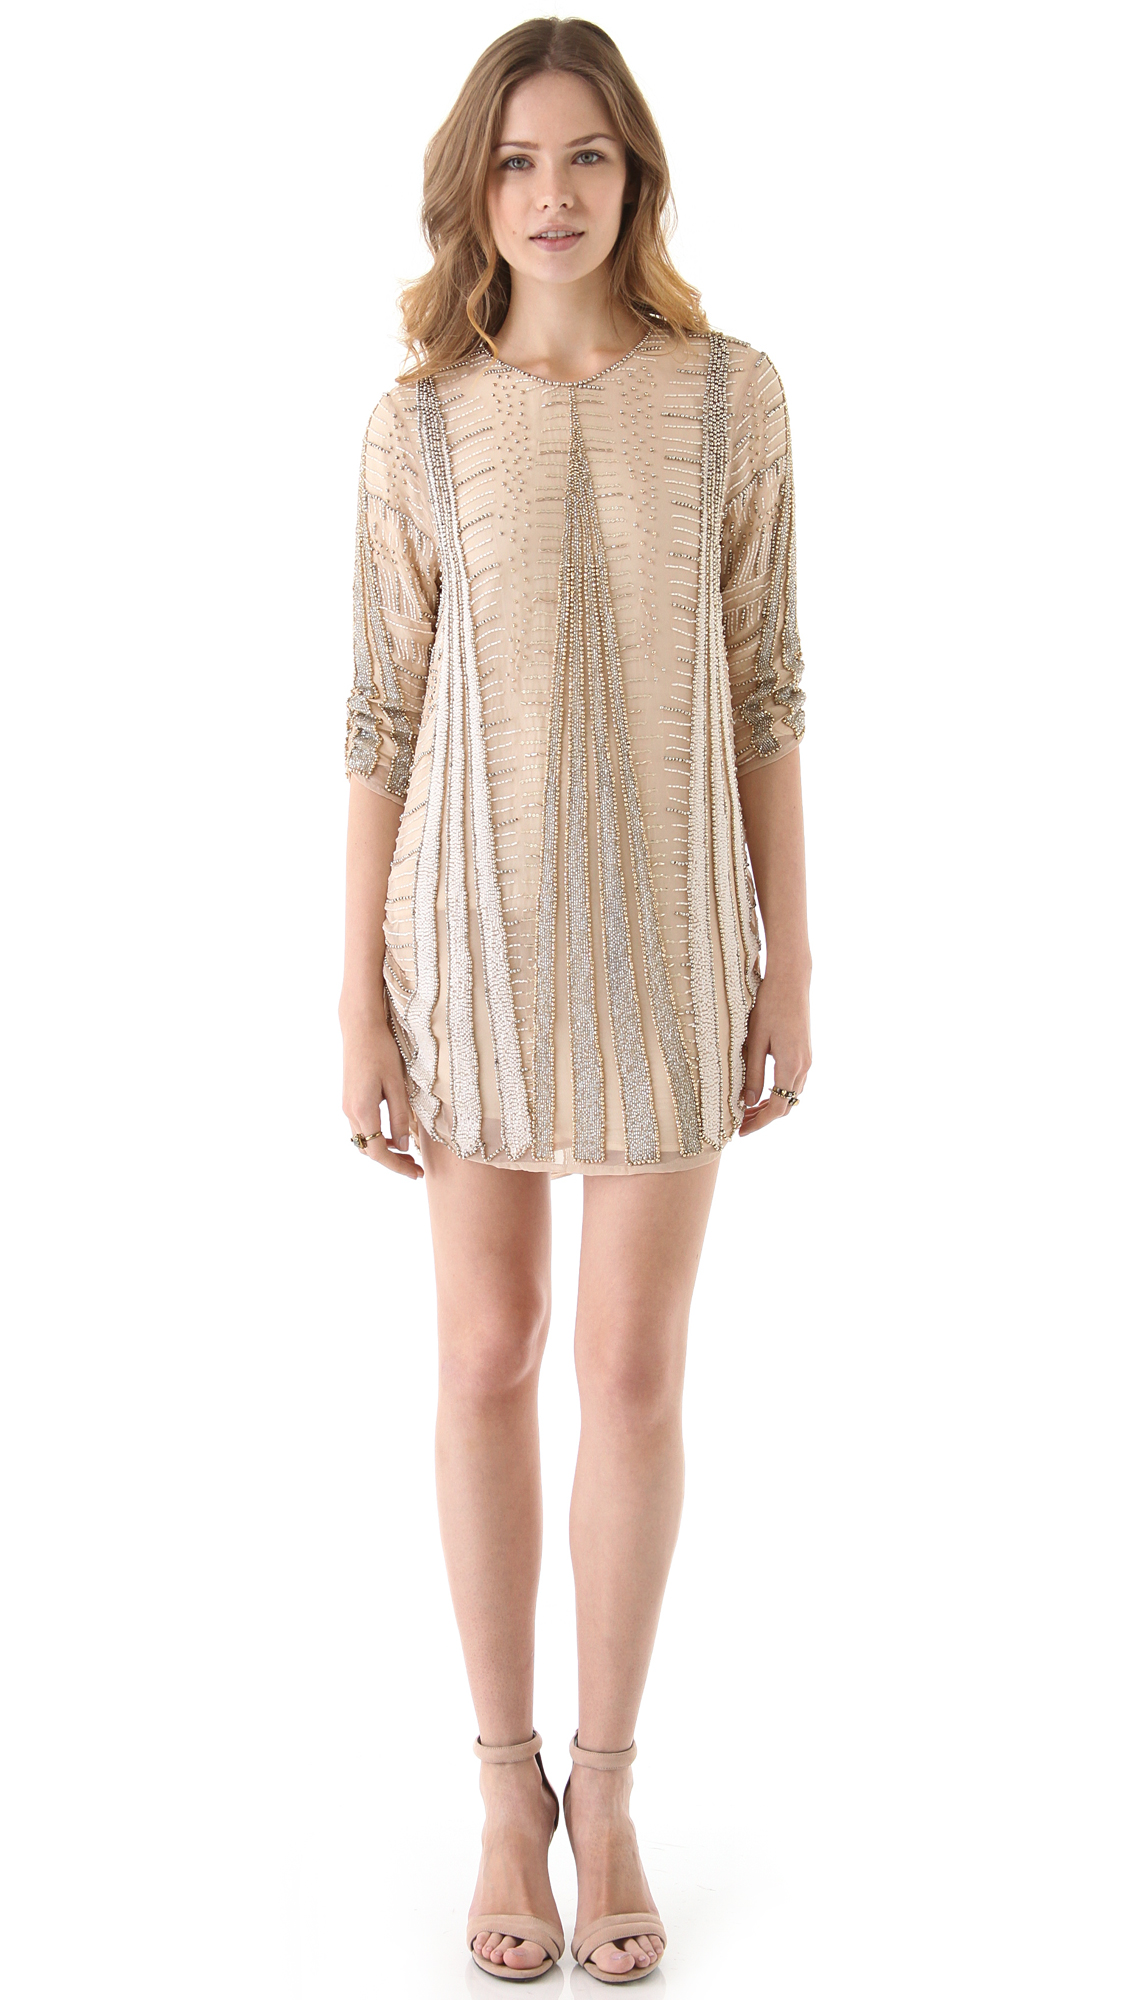 Lyst - Parker Art Deco Beaded Dress in Natural